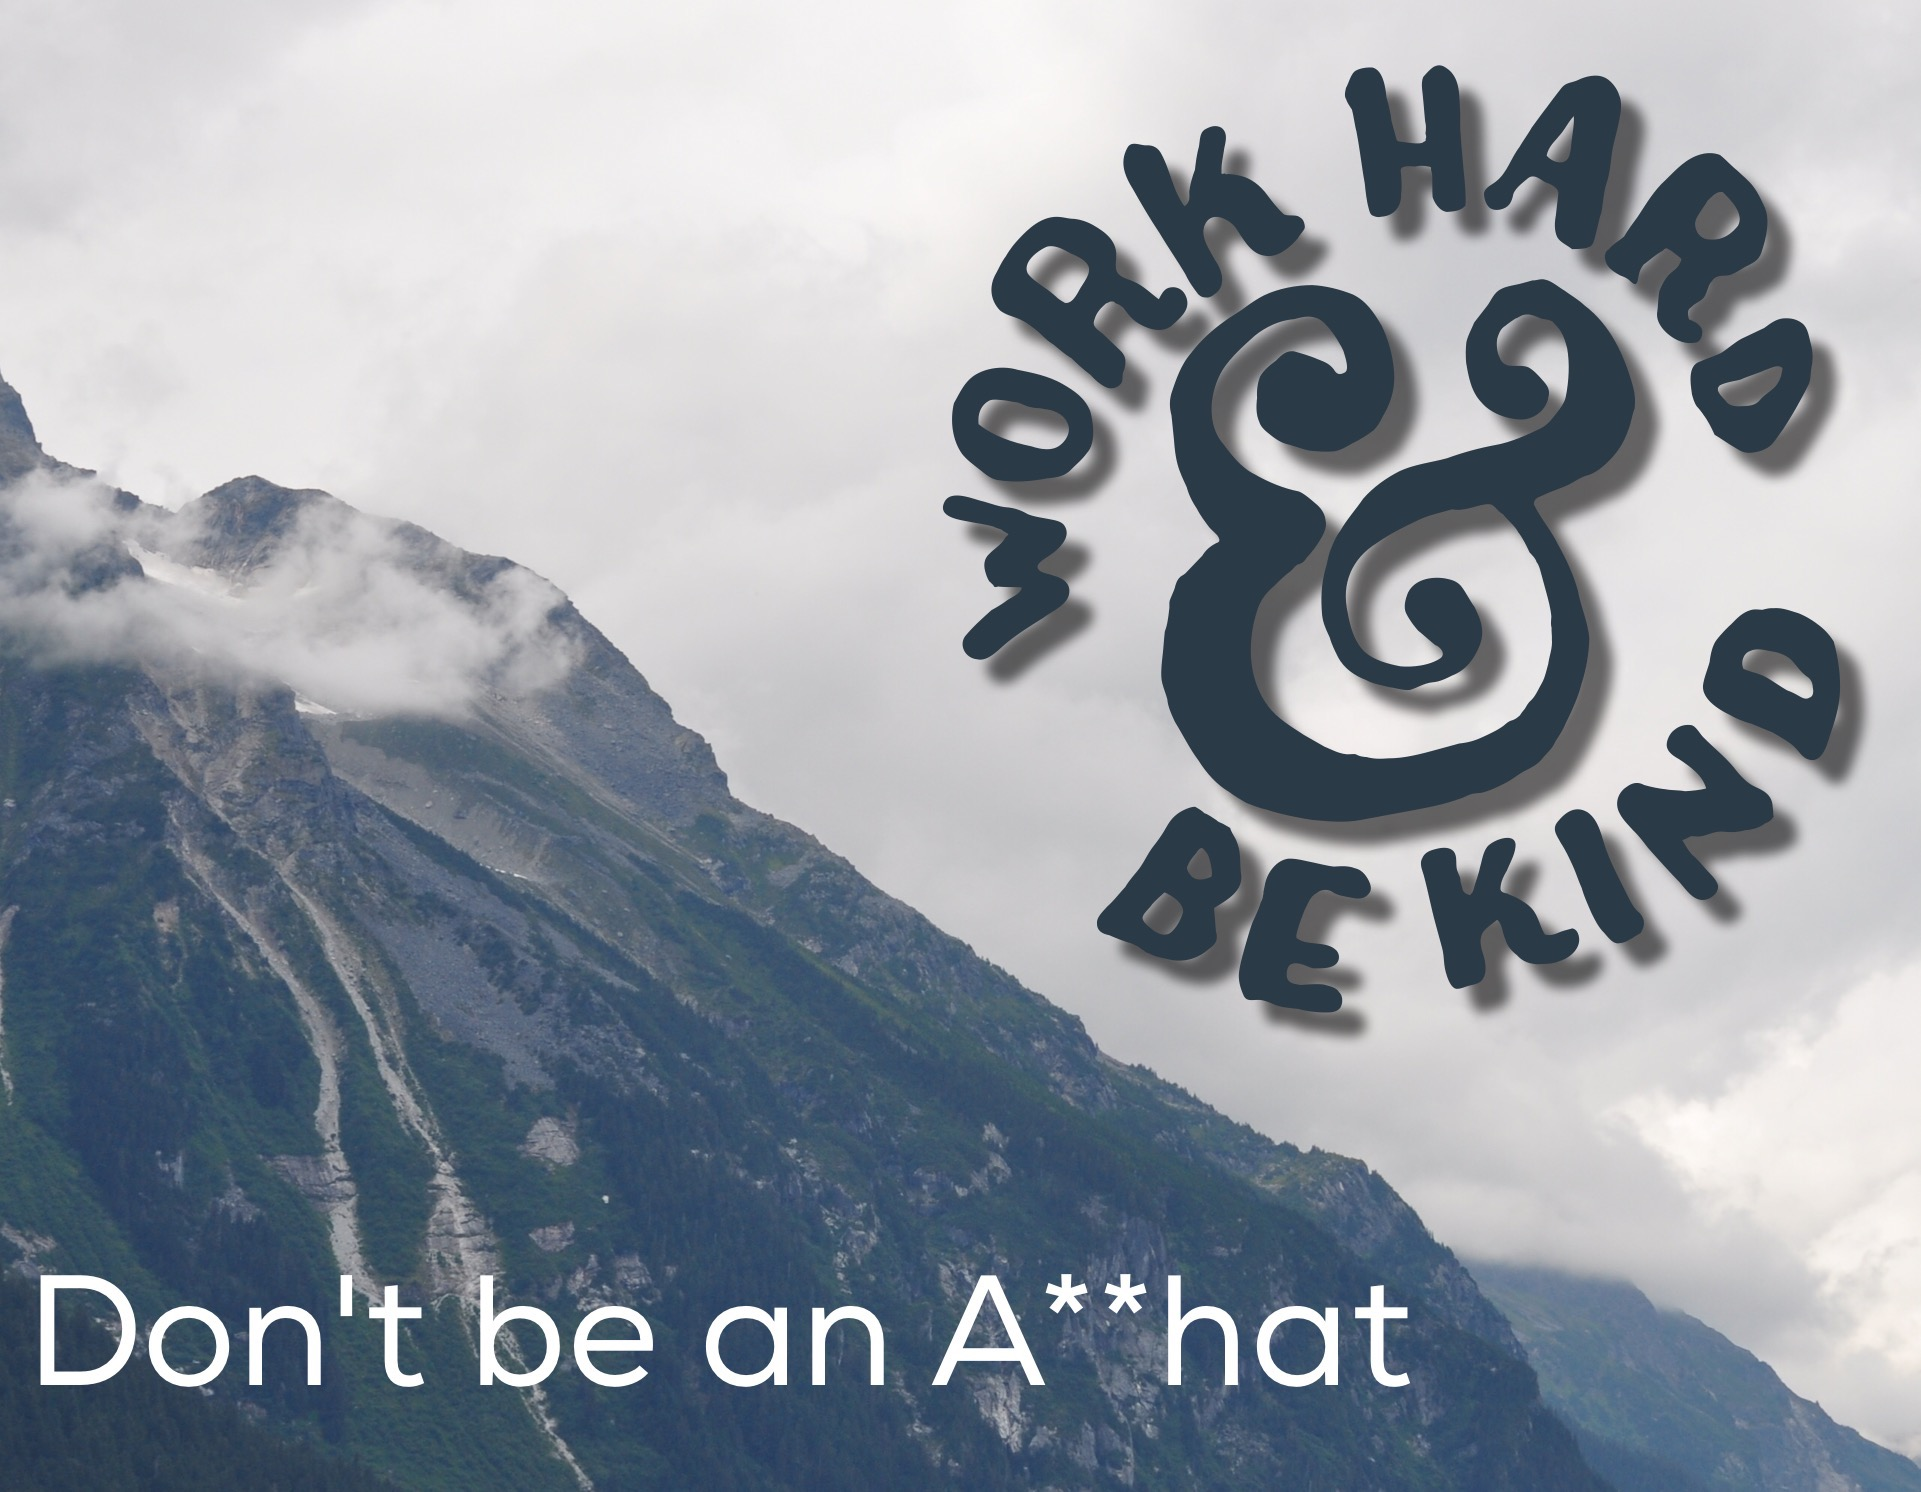 Don't be an A**hat